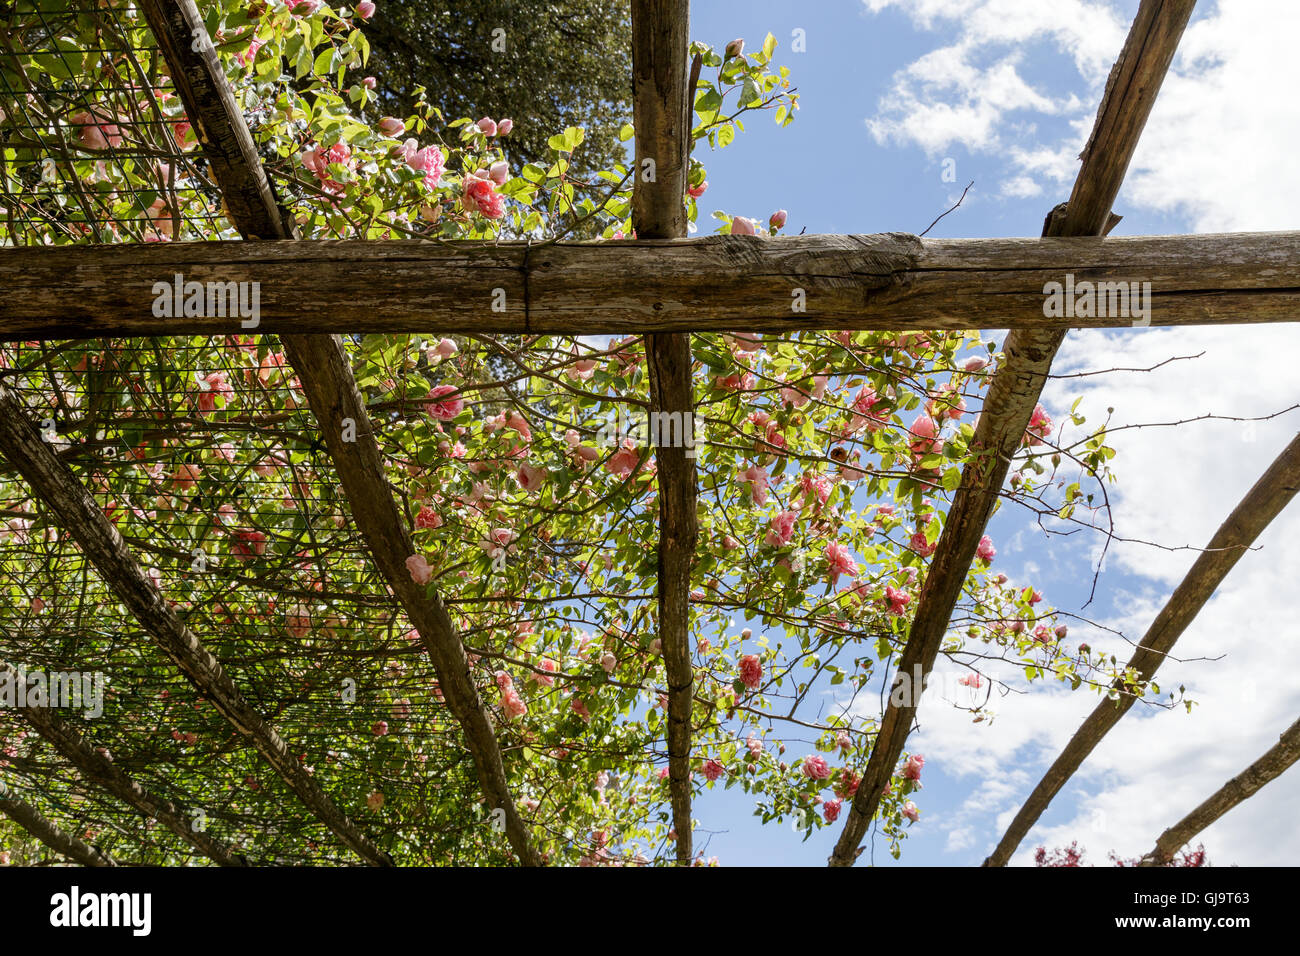 Pink rambling rose climbing over pergola at country house - Stock Image